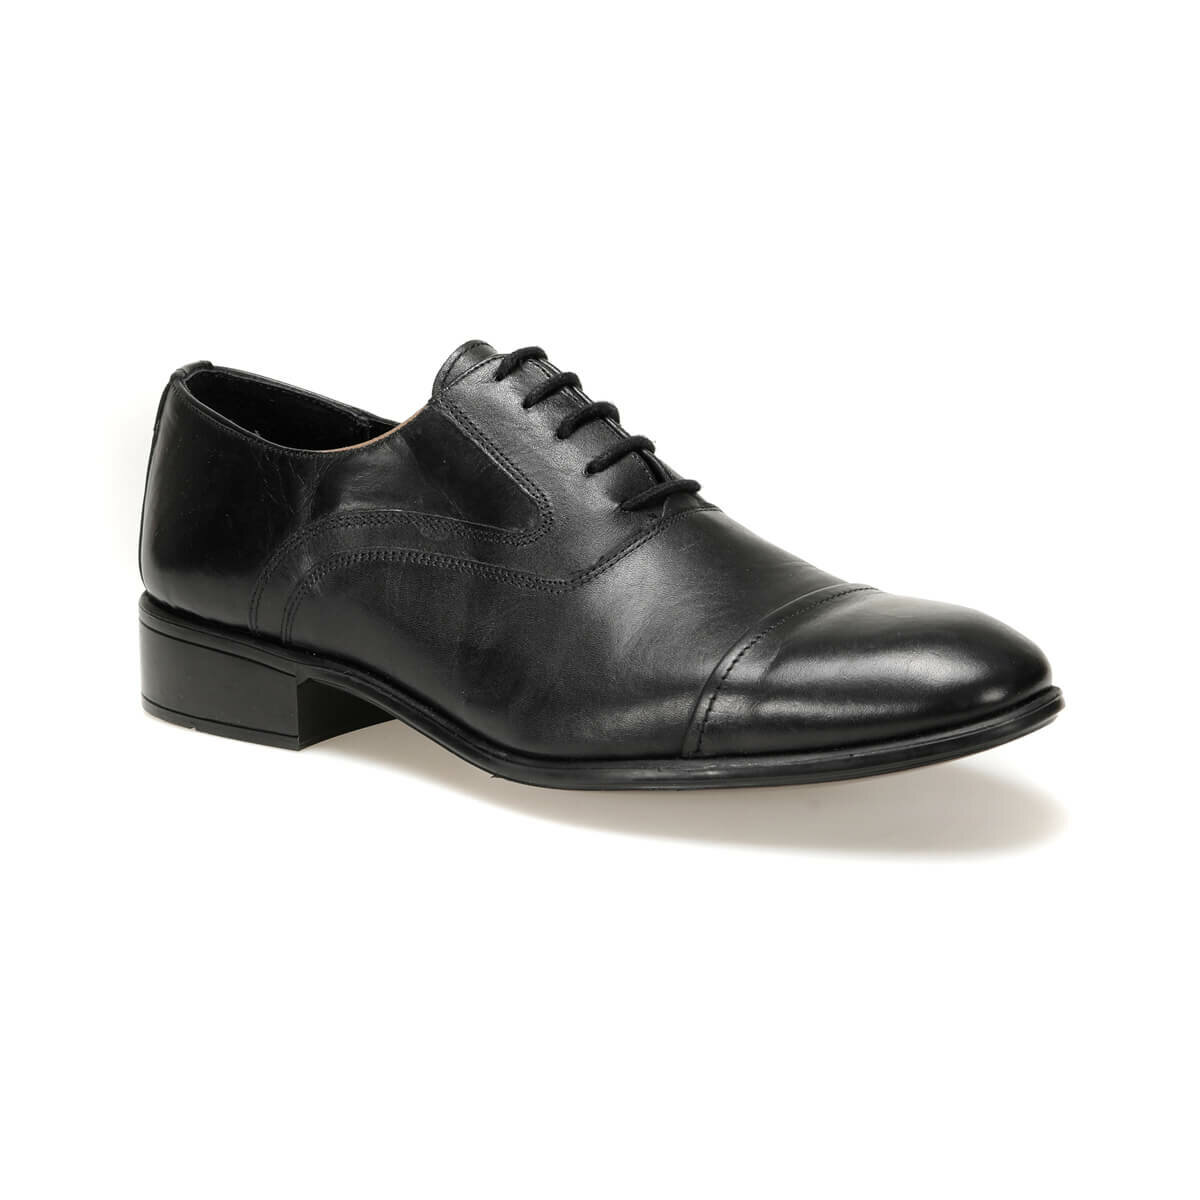 FLO 1018 C 19 Black Men 'S Classic Shoes Garamond